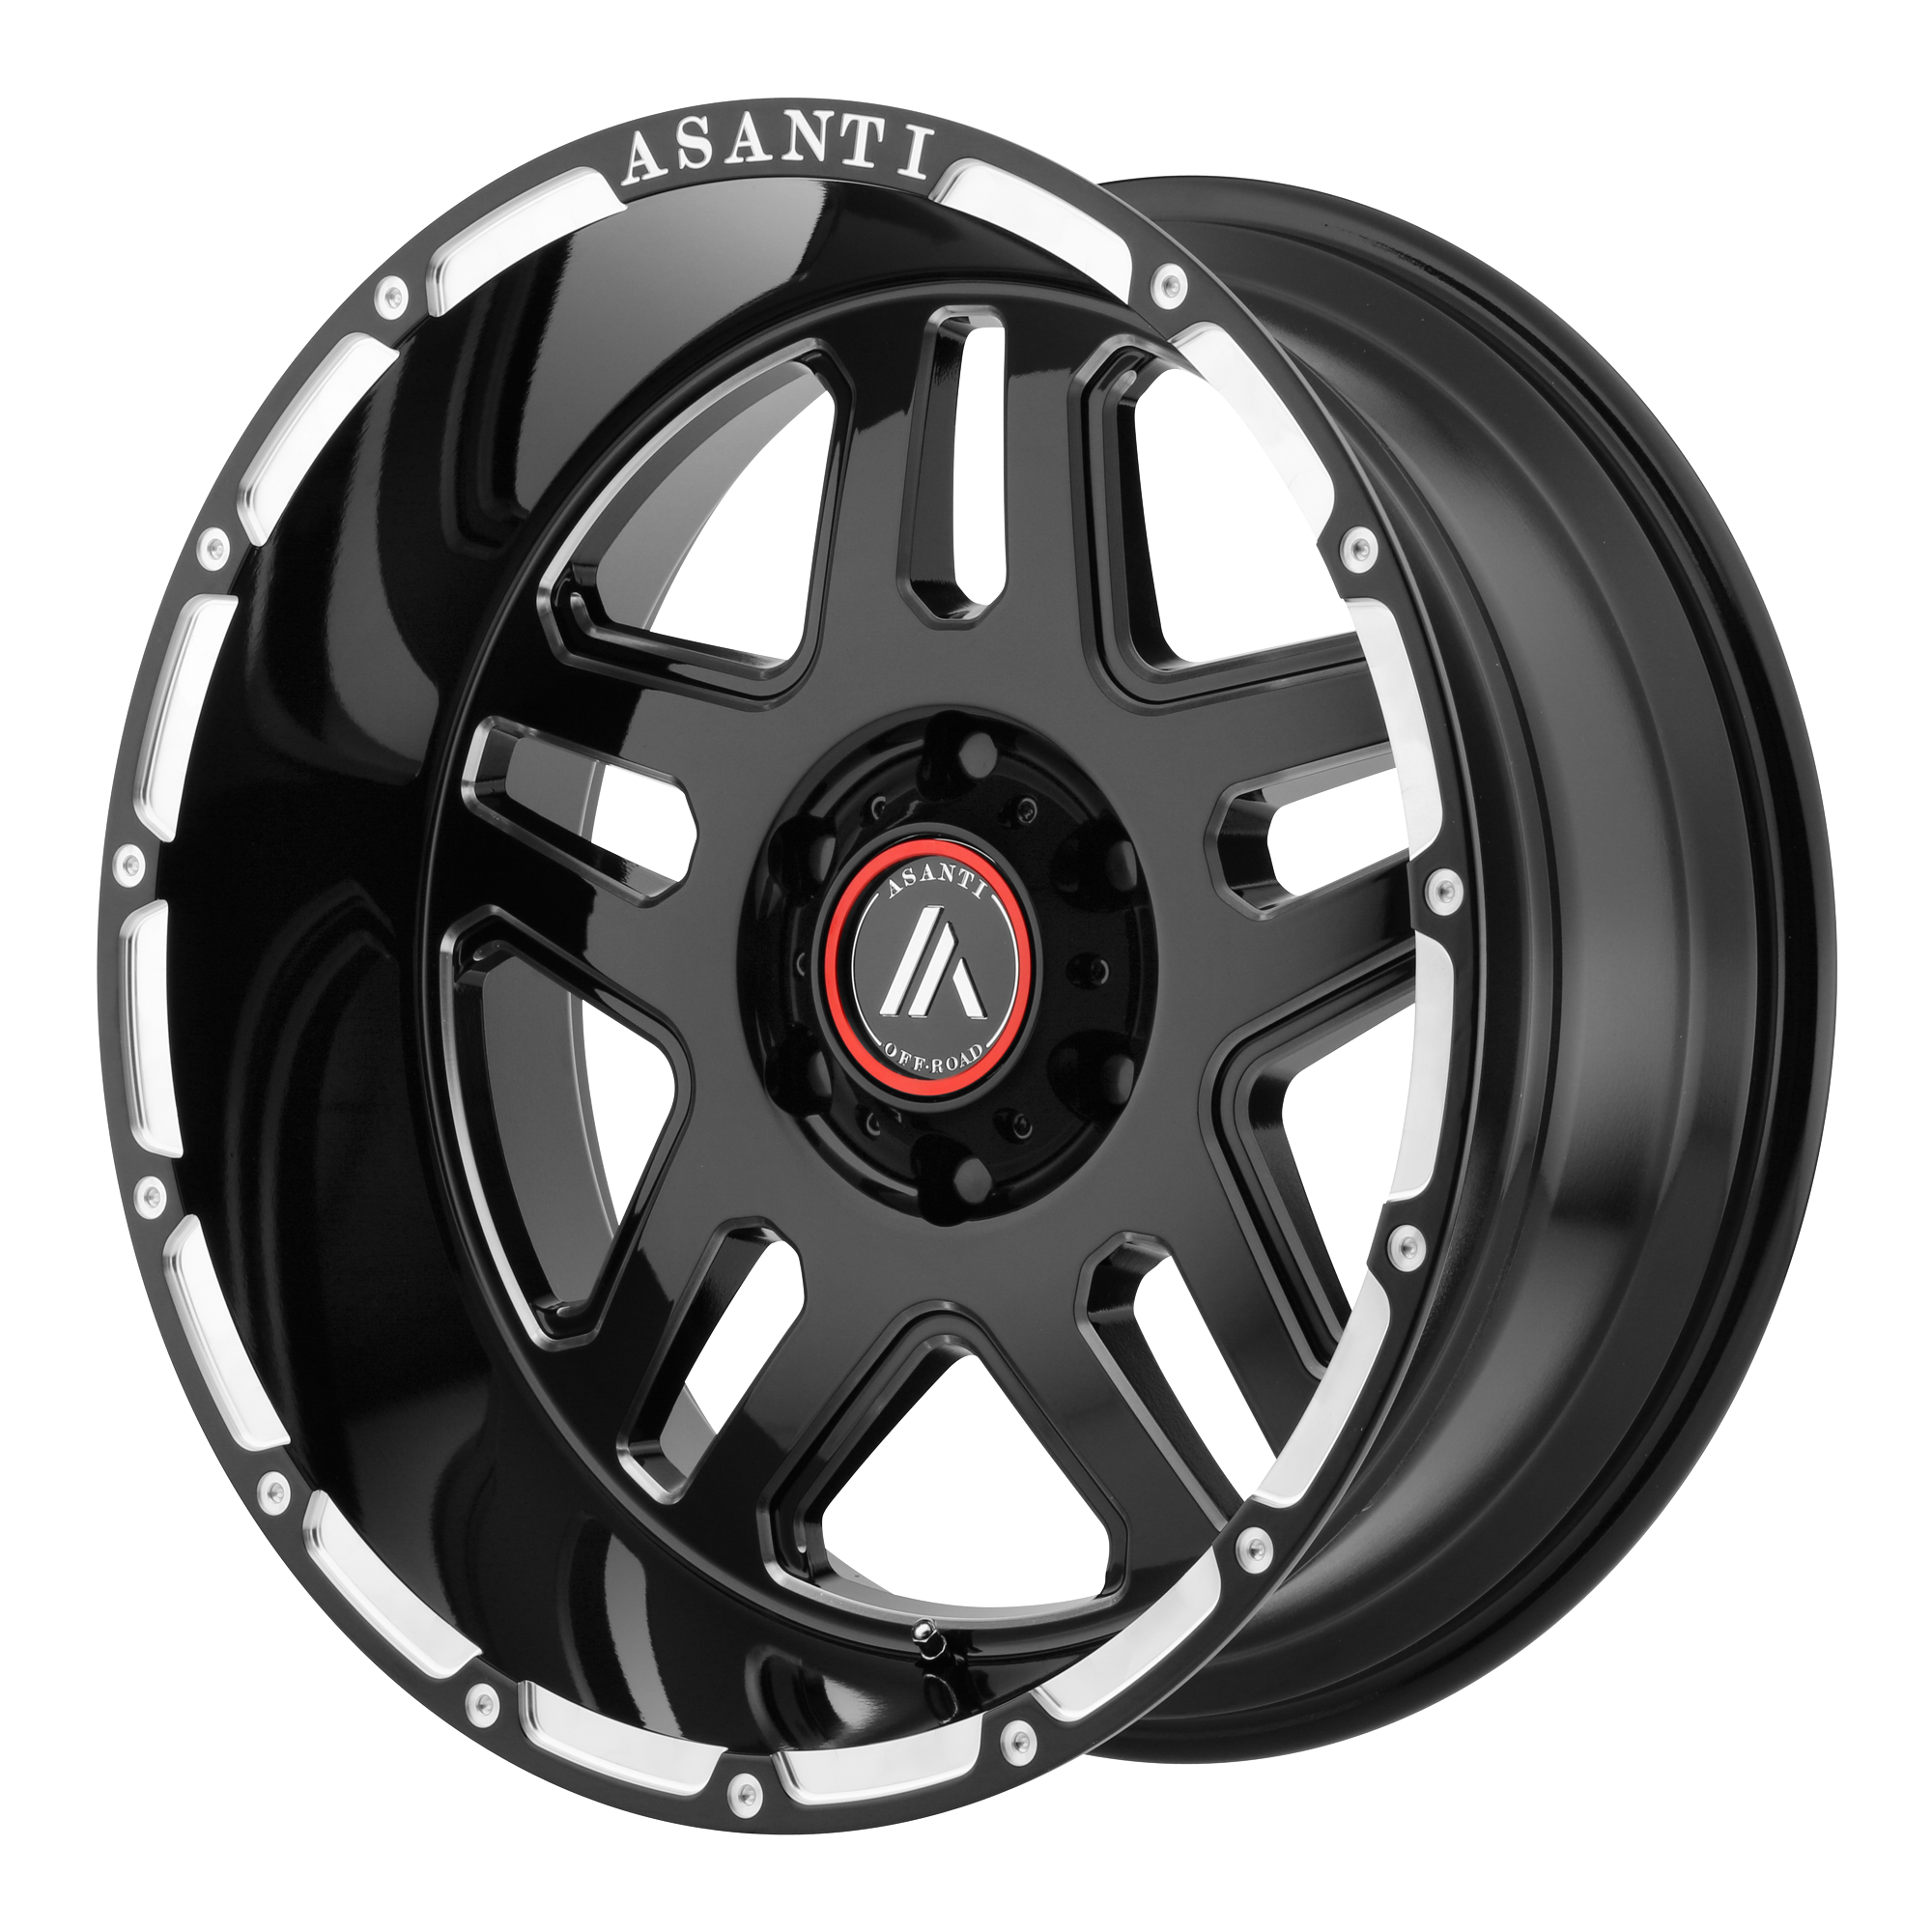 ASANTI OFF ROAD-AB809 20x9 6x139.70 GLOSS BLACK MILLED (40 mm)